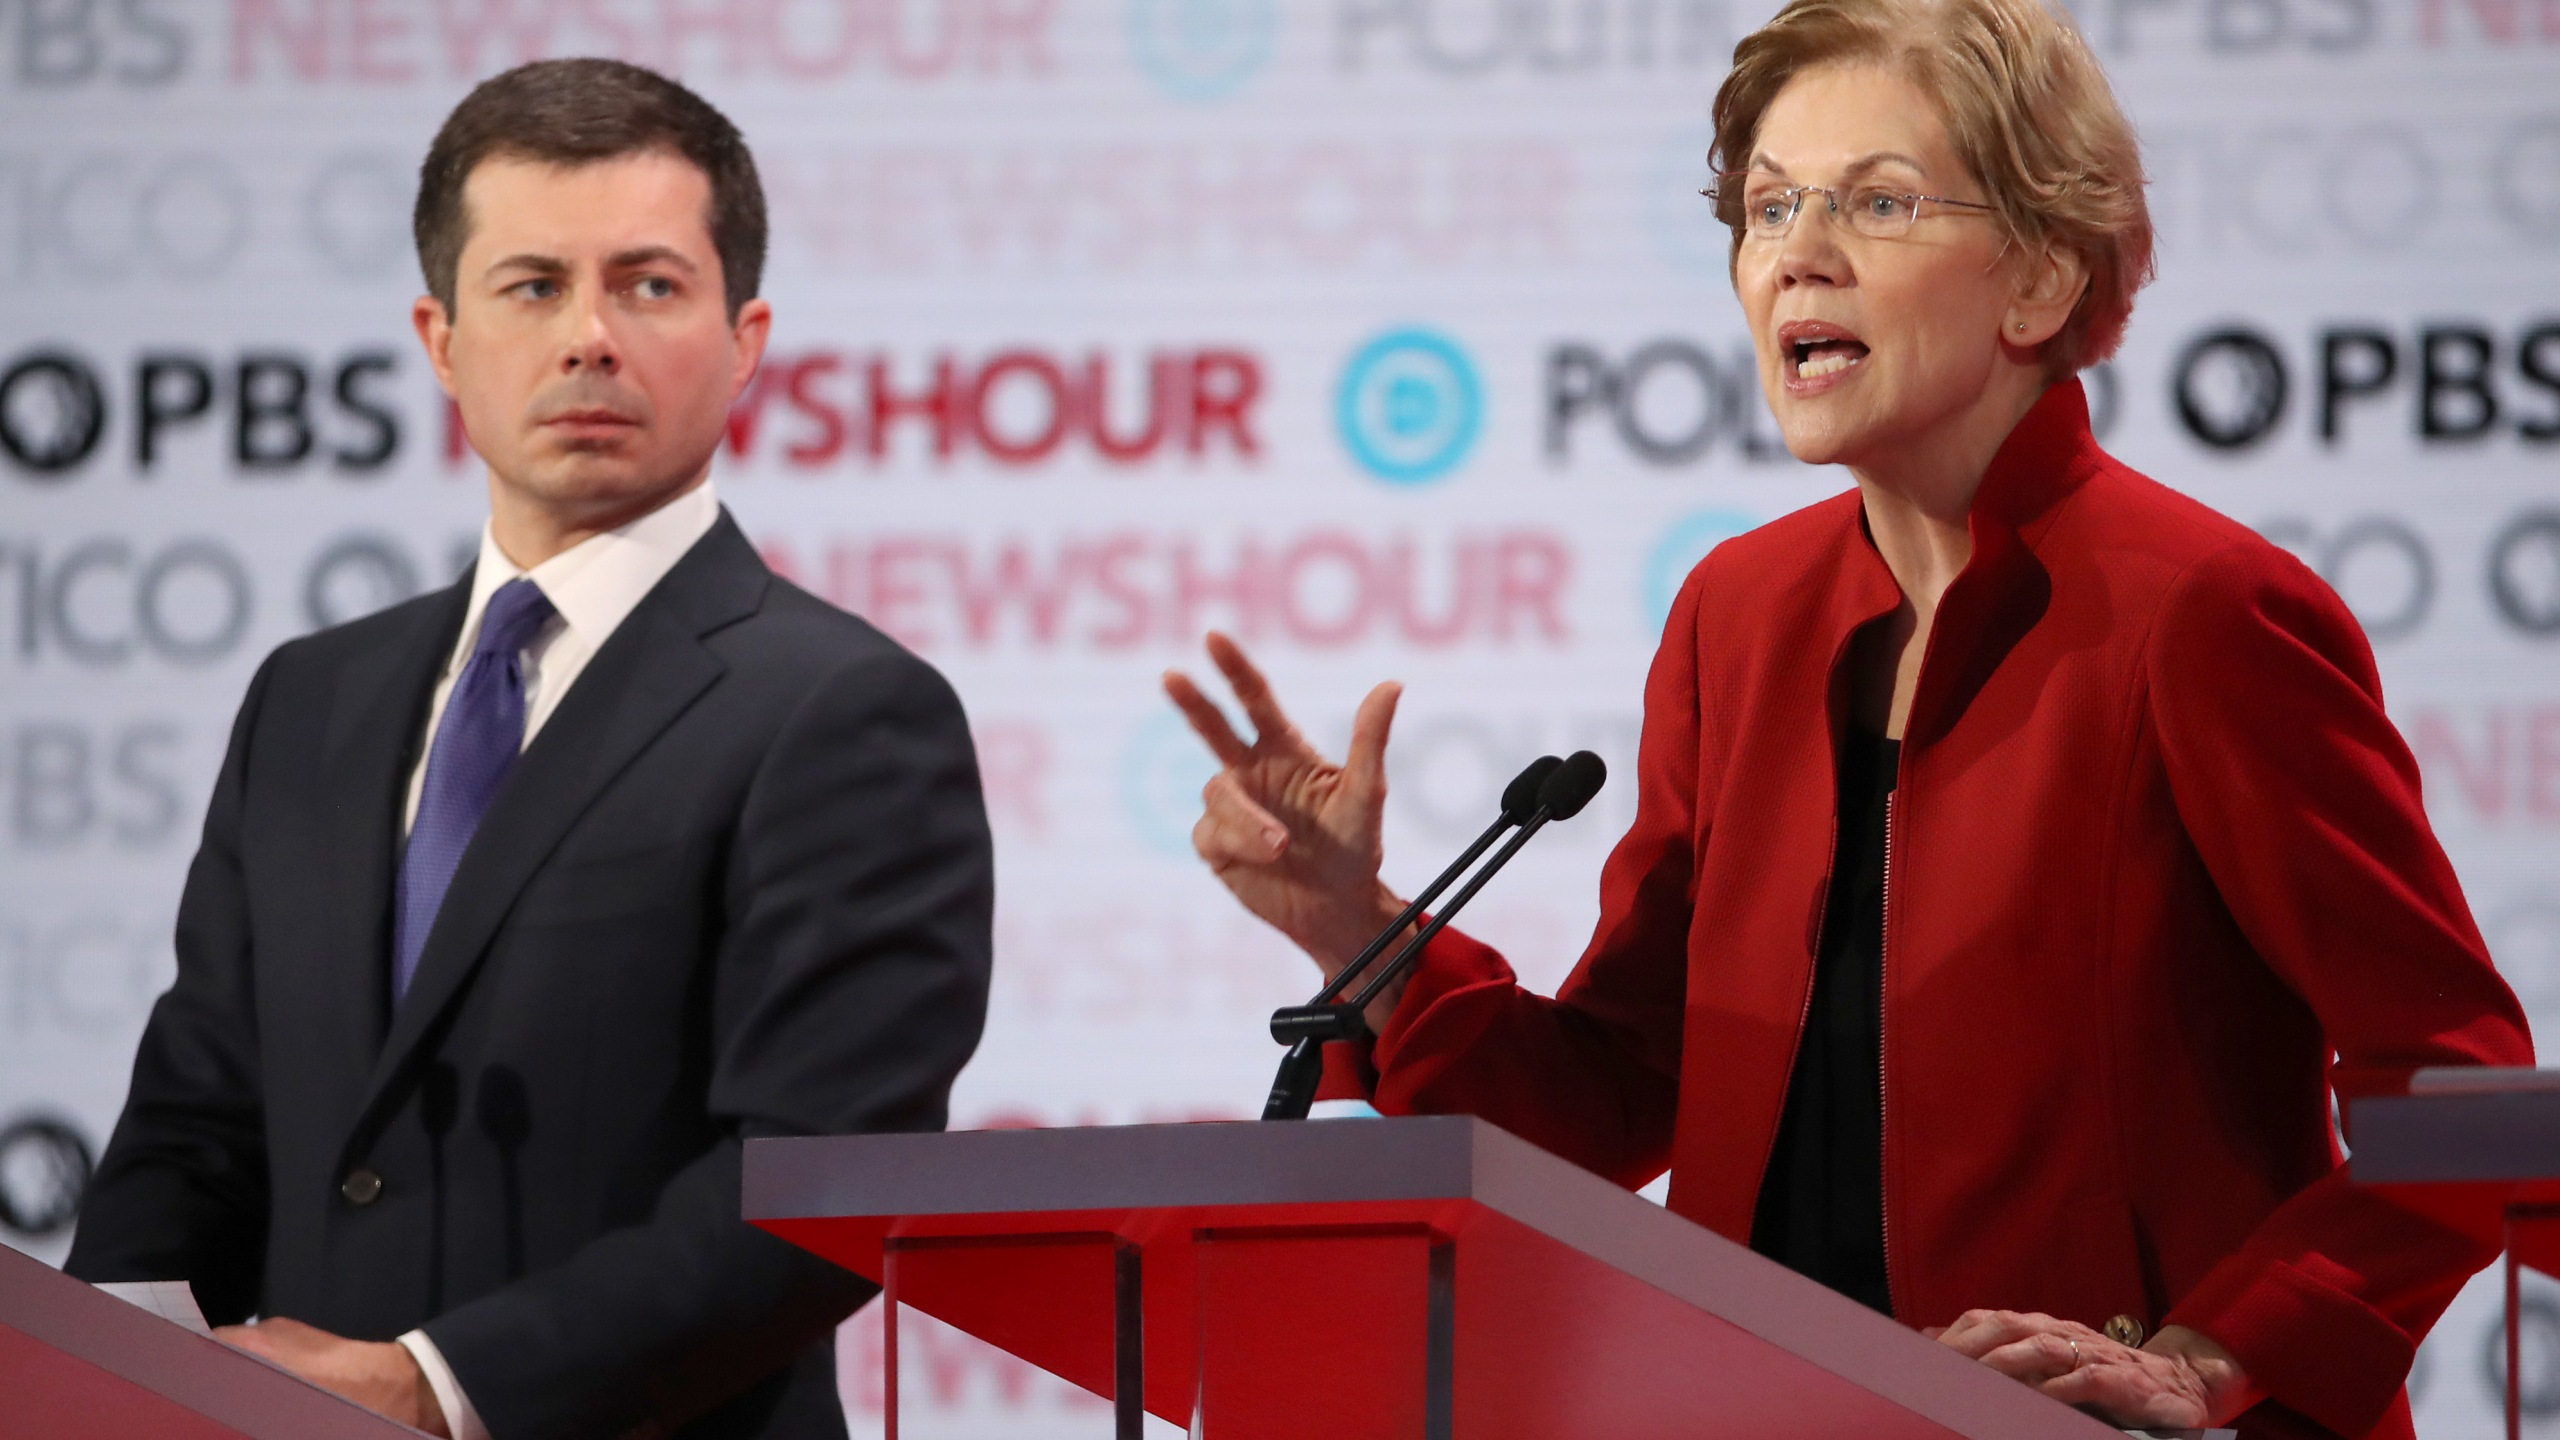 Sen. Elizabeth Warren (D-MA) speaks as South Bend, Indiana Mayor Pete Buttigieg listens during the Democratic presidential primary debate at Loyola Marymount University on Dec. 19, 2019. (Credit: Justin Sullivan/Getty Images)